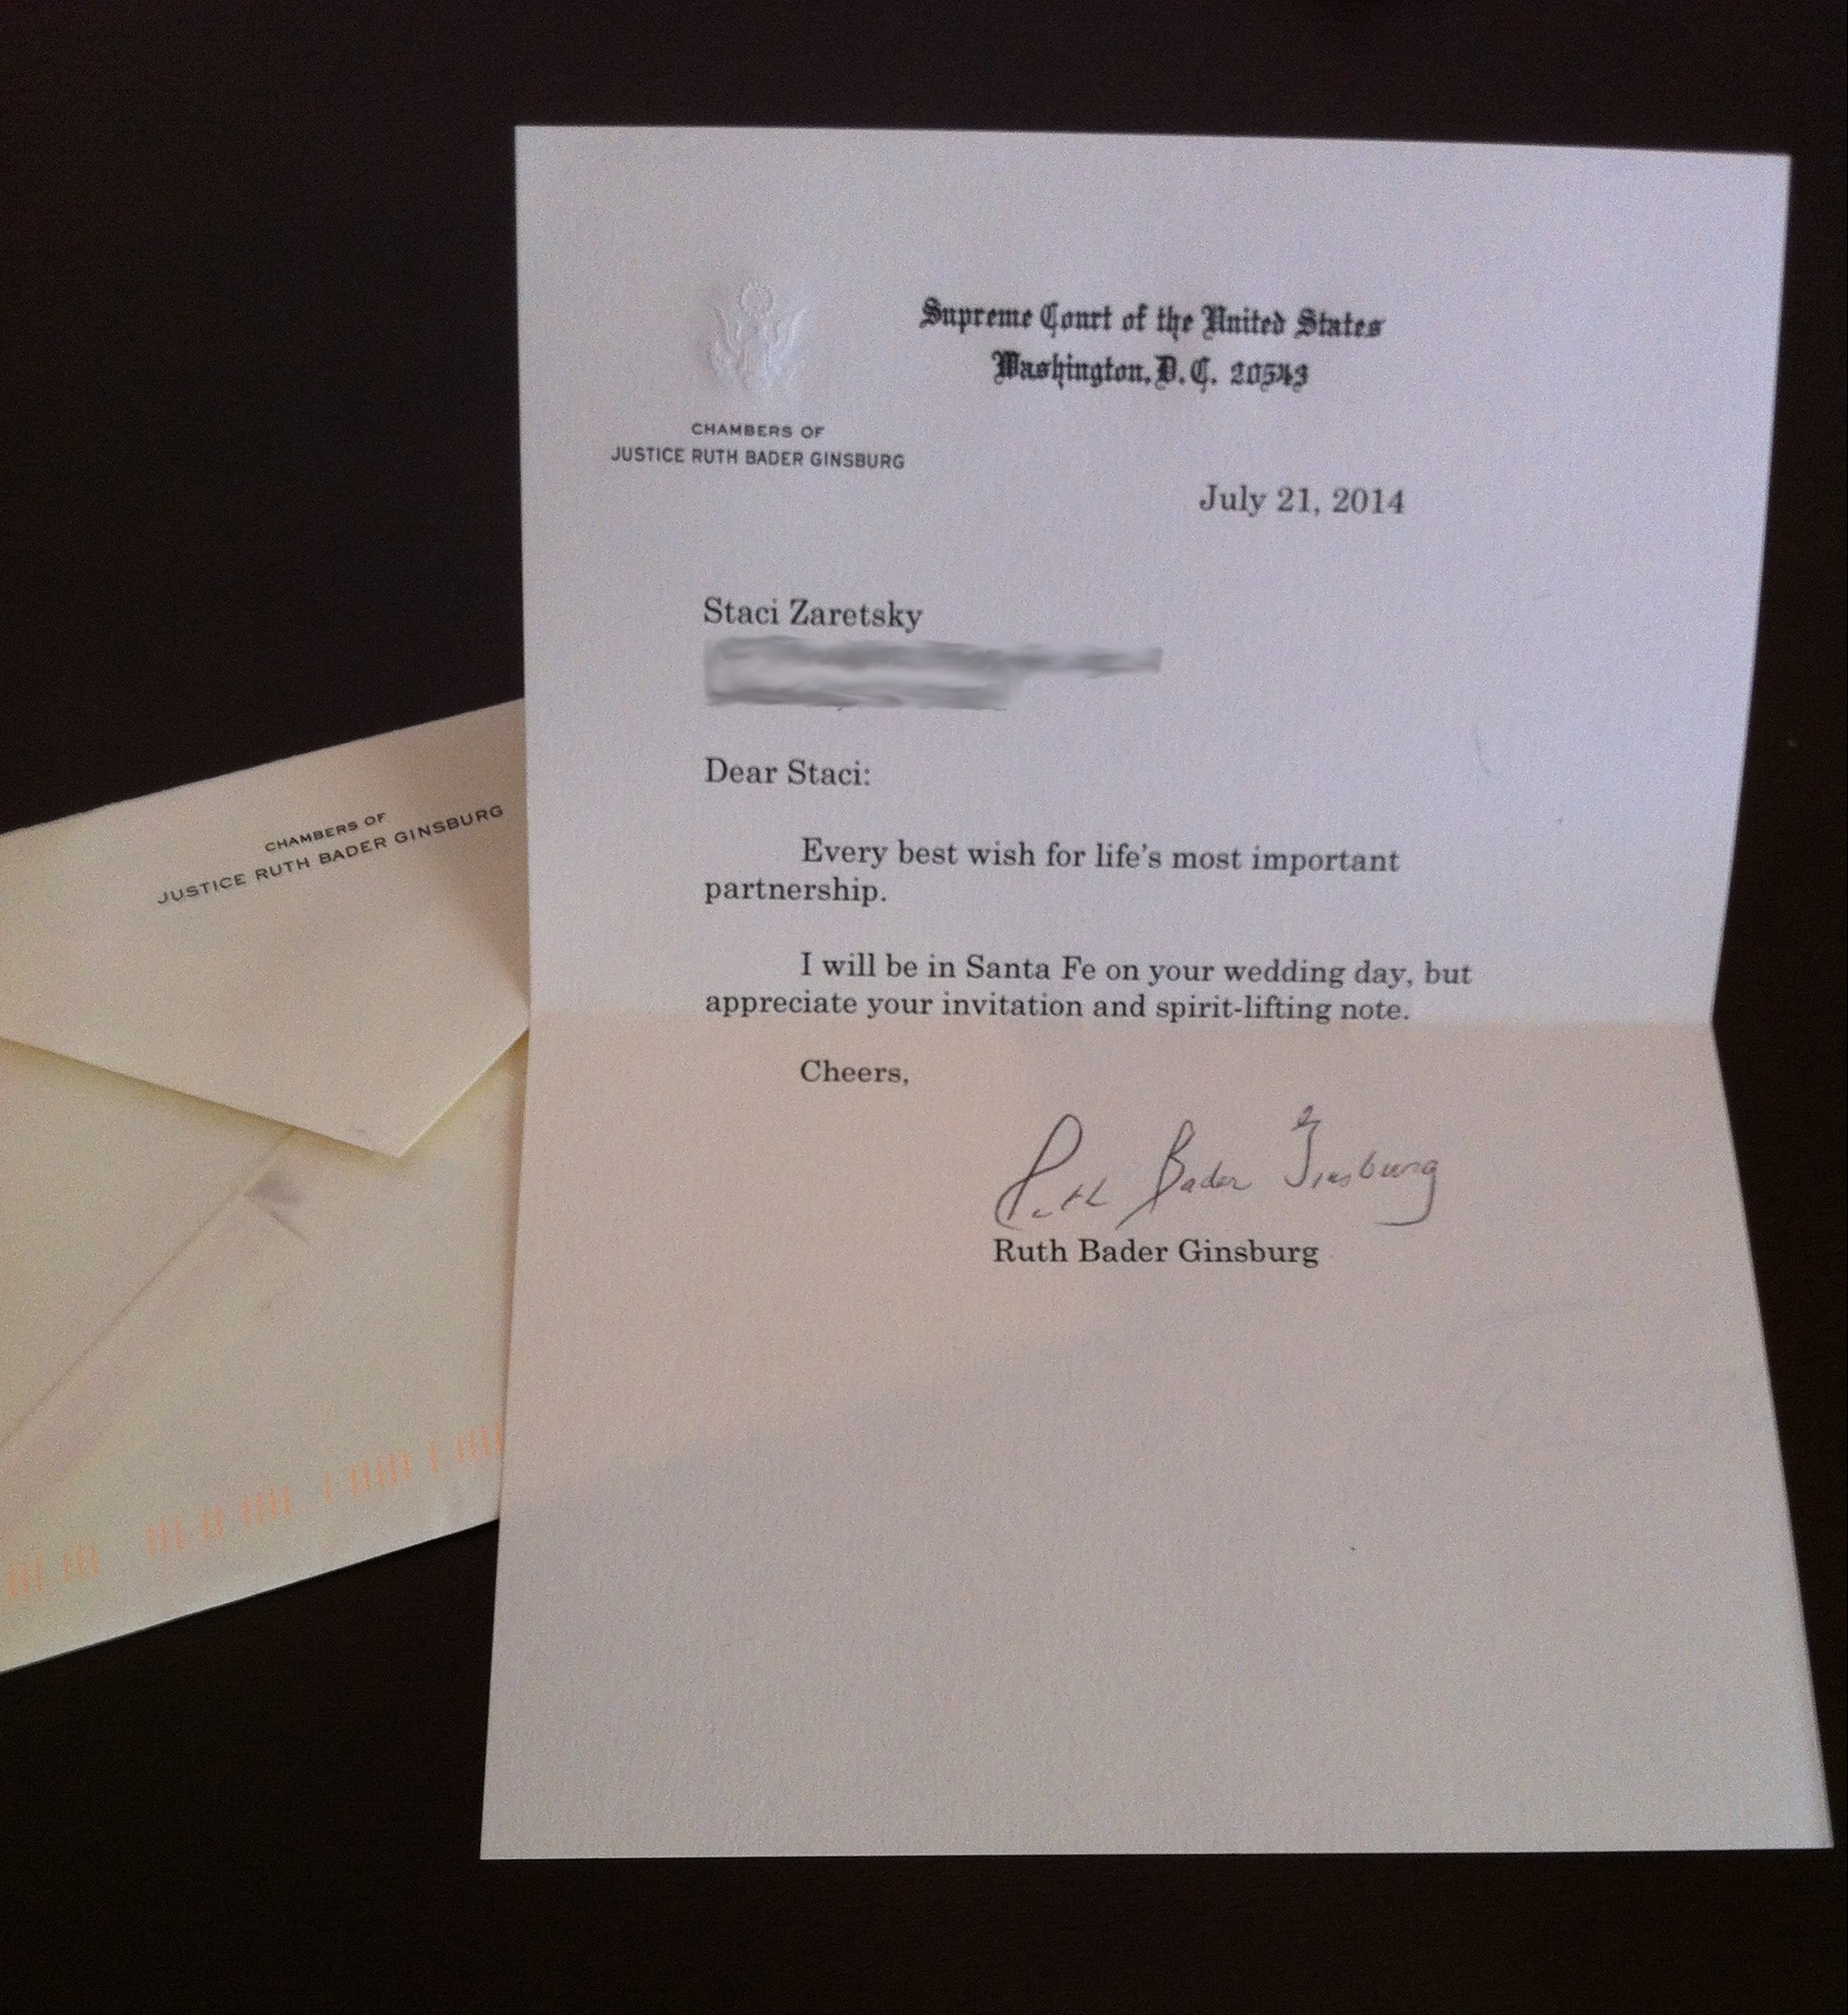 This is the letter Staci Zaretsky received from Justice Ruth Bader Ginsburg responding to Zaretsky's wedding invitation.